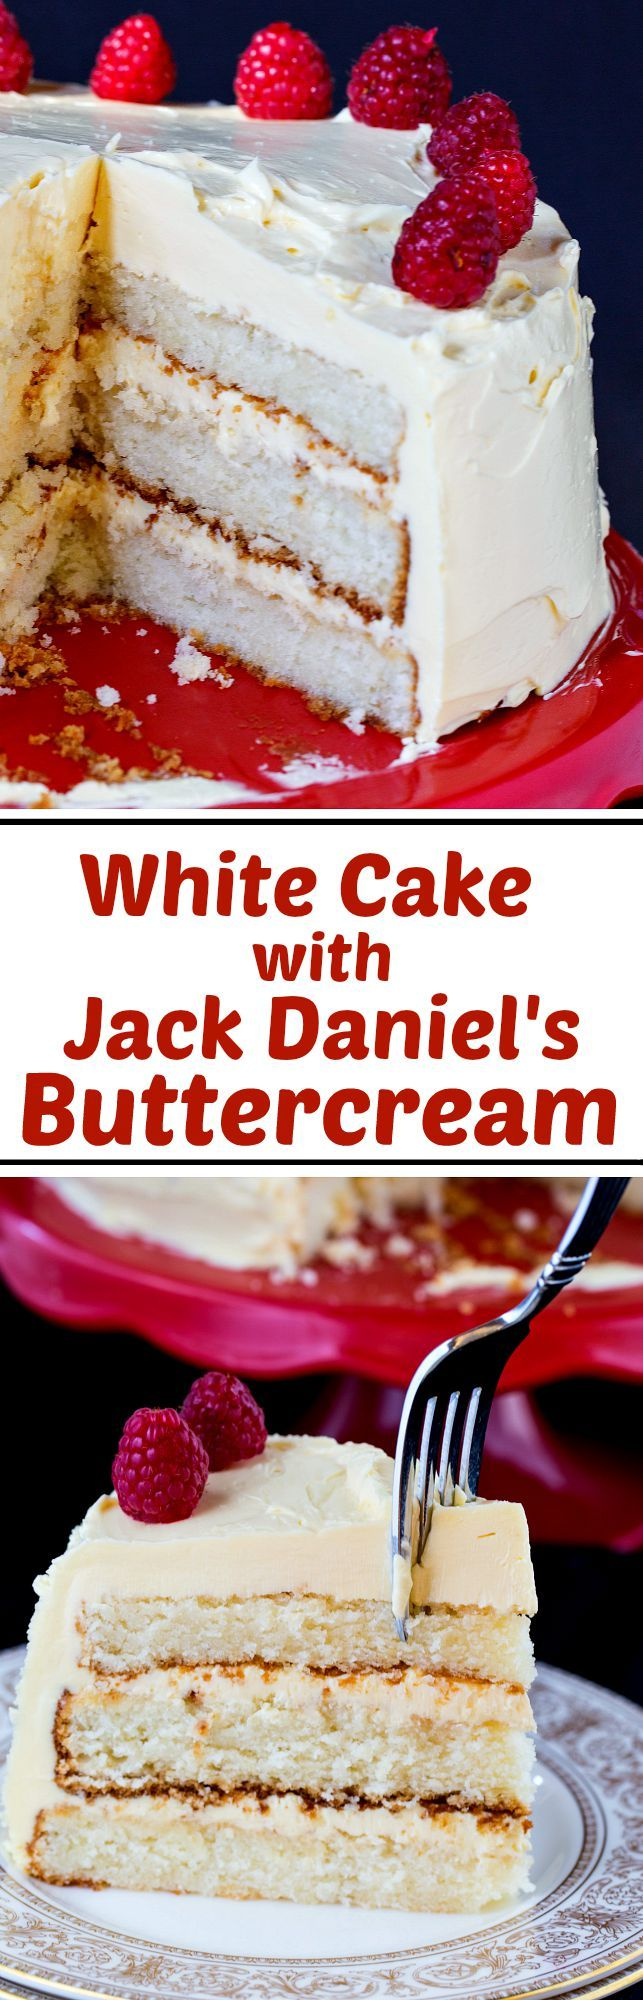 White Cake with Jack Daniel's Buttercream from The Pastry Queen Cookbook.